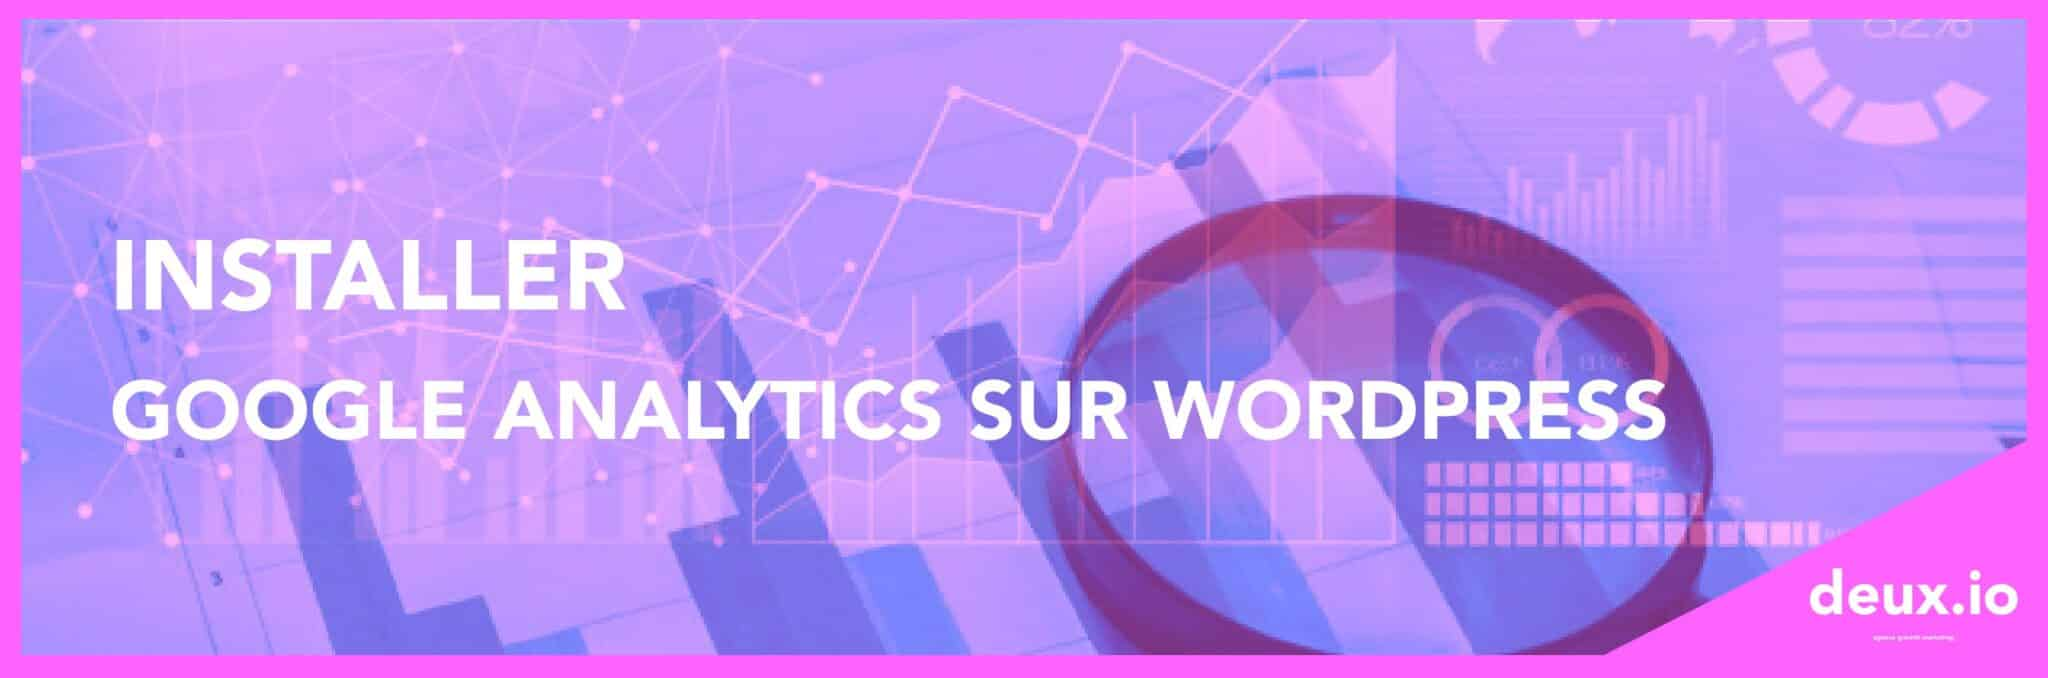 Installer Google Analytics sur Wordpress